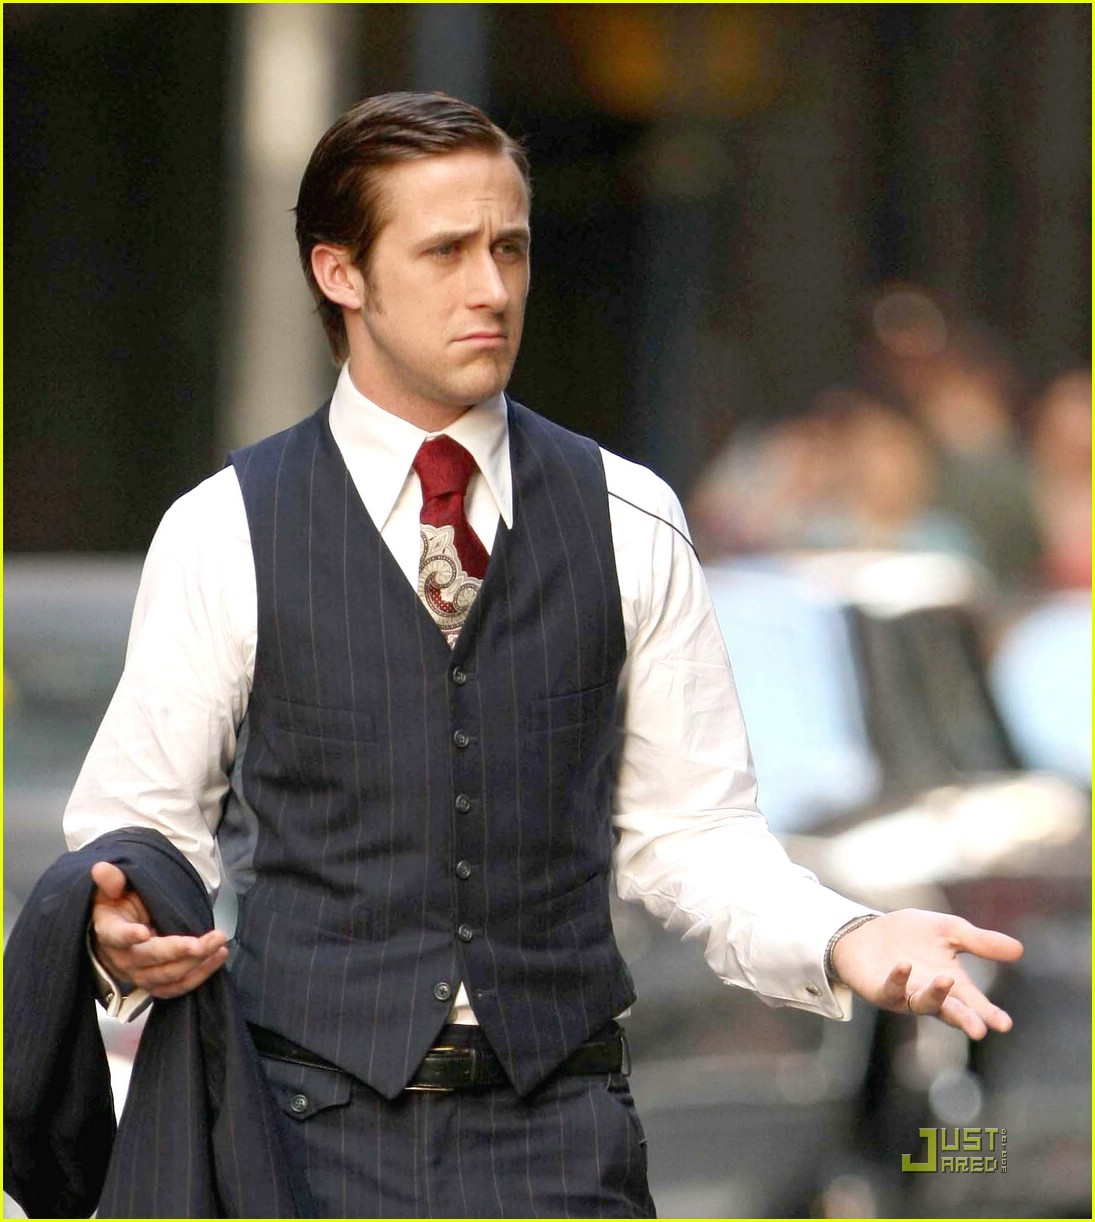 Ryan Gosling Suits Posted in ryan gosling suits Ryan Gosling